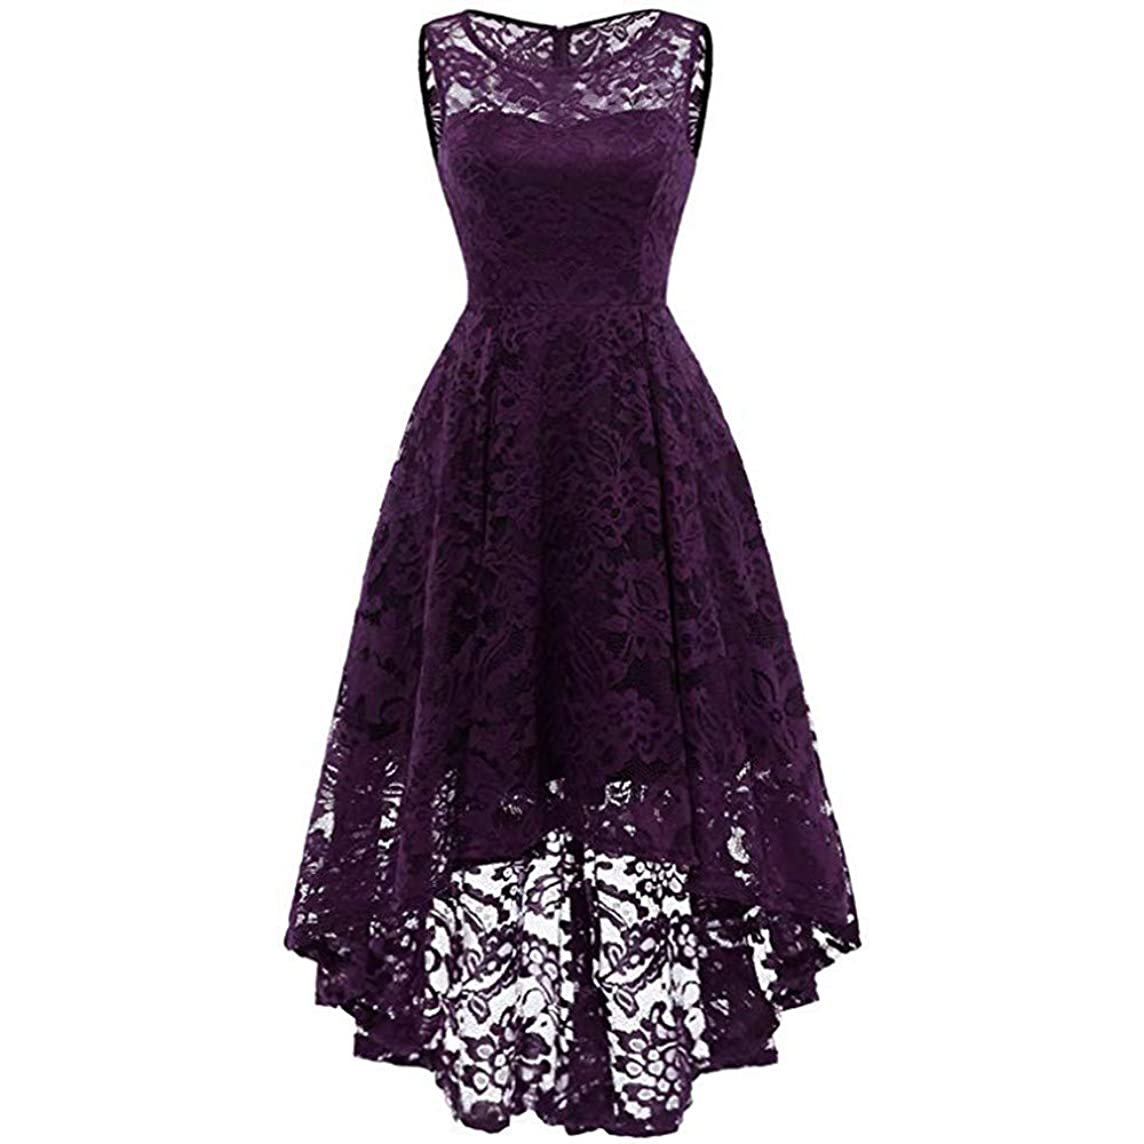 ??ONLY TOP?? Women's Vintage Floral Lace Sleeveless Hi-Lo Cocktail Formal Swing Dress